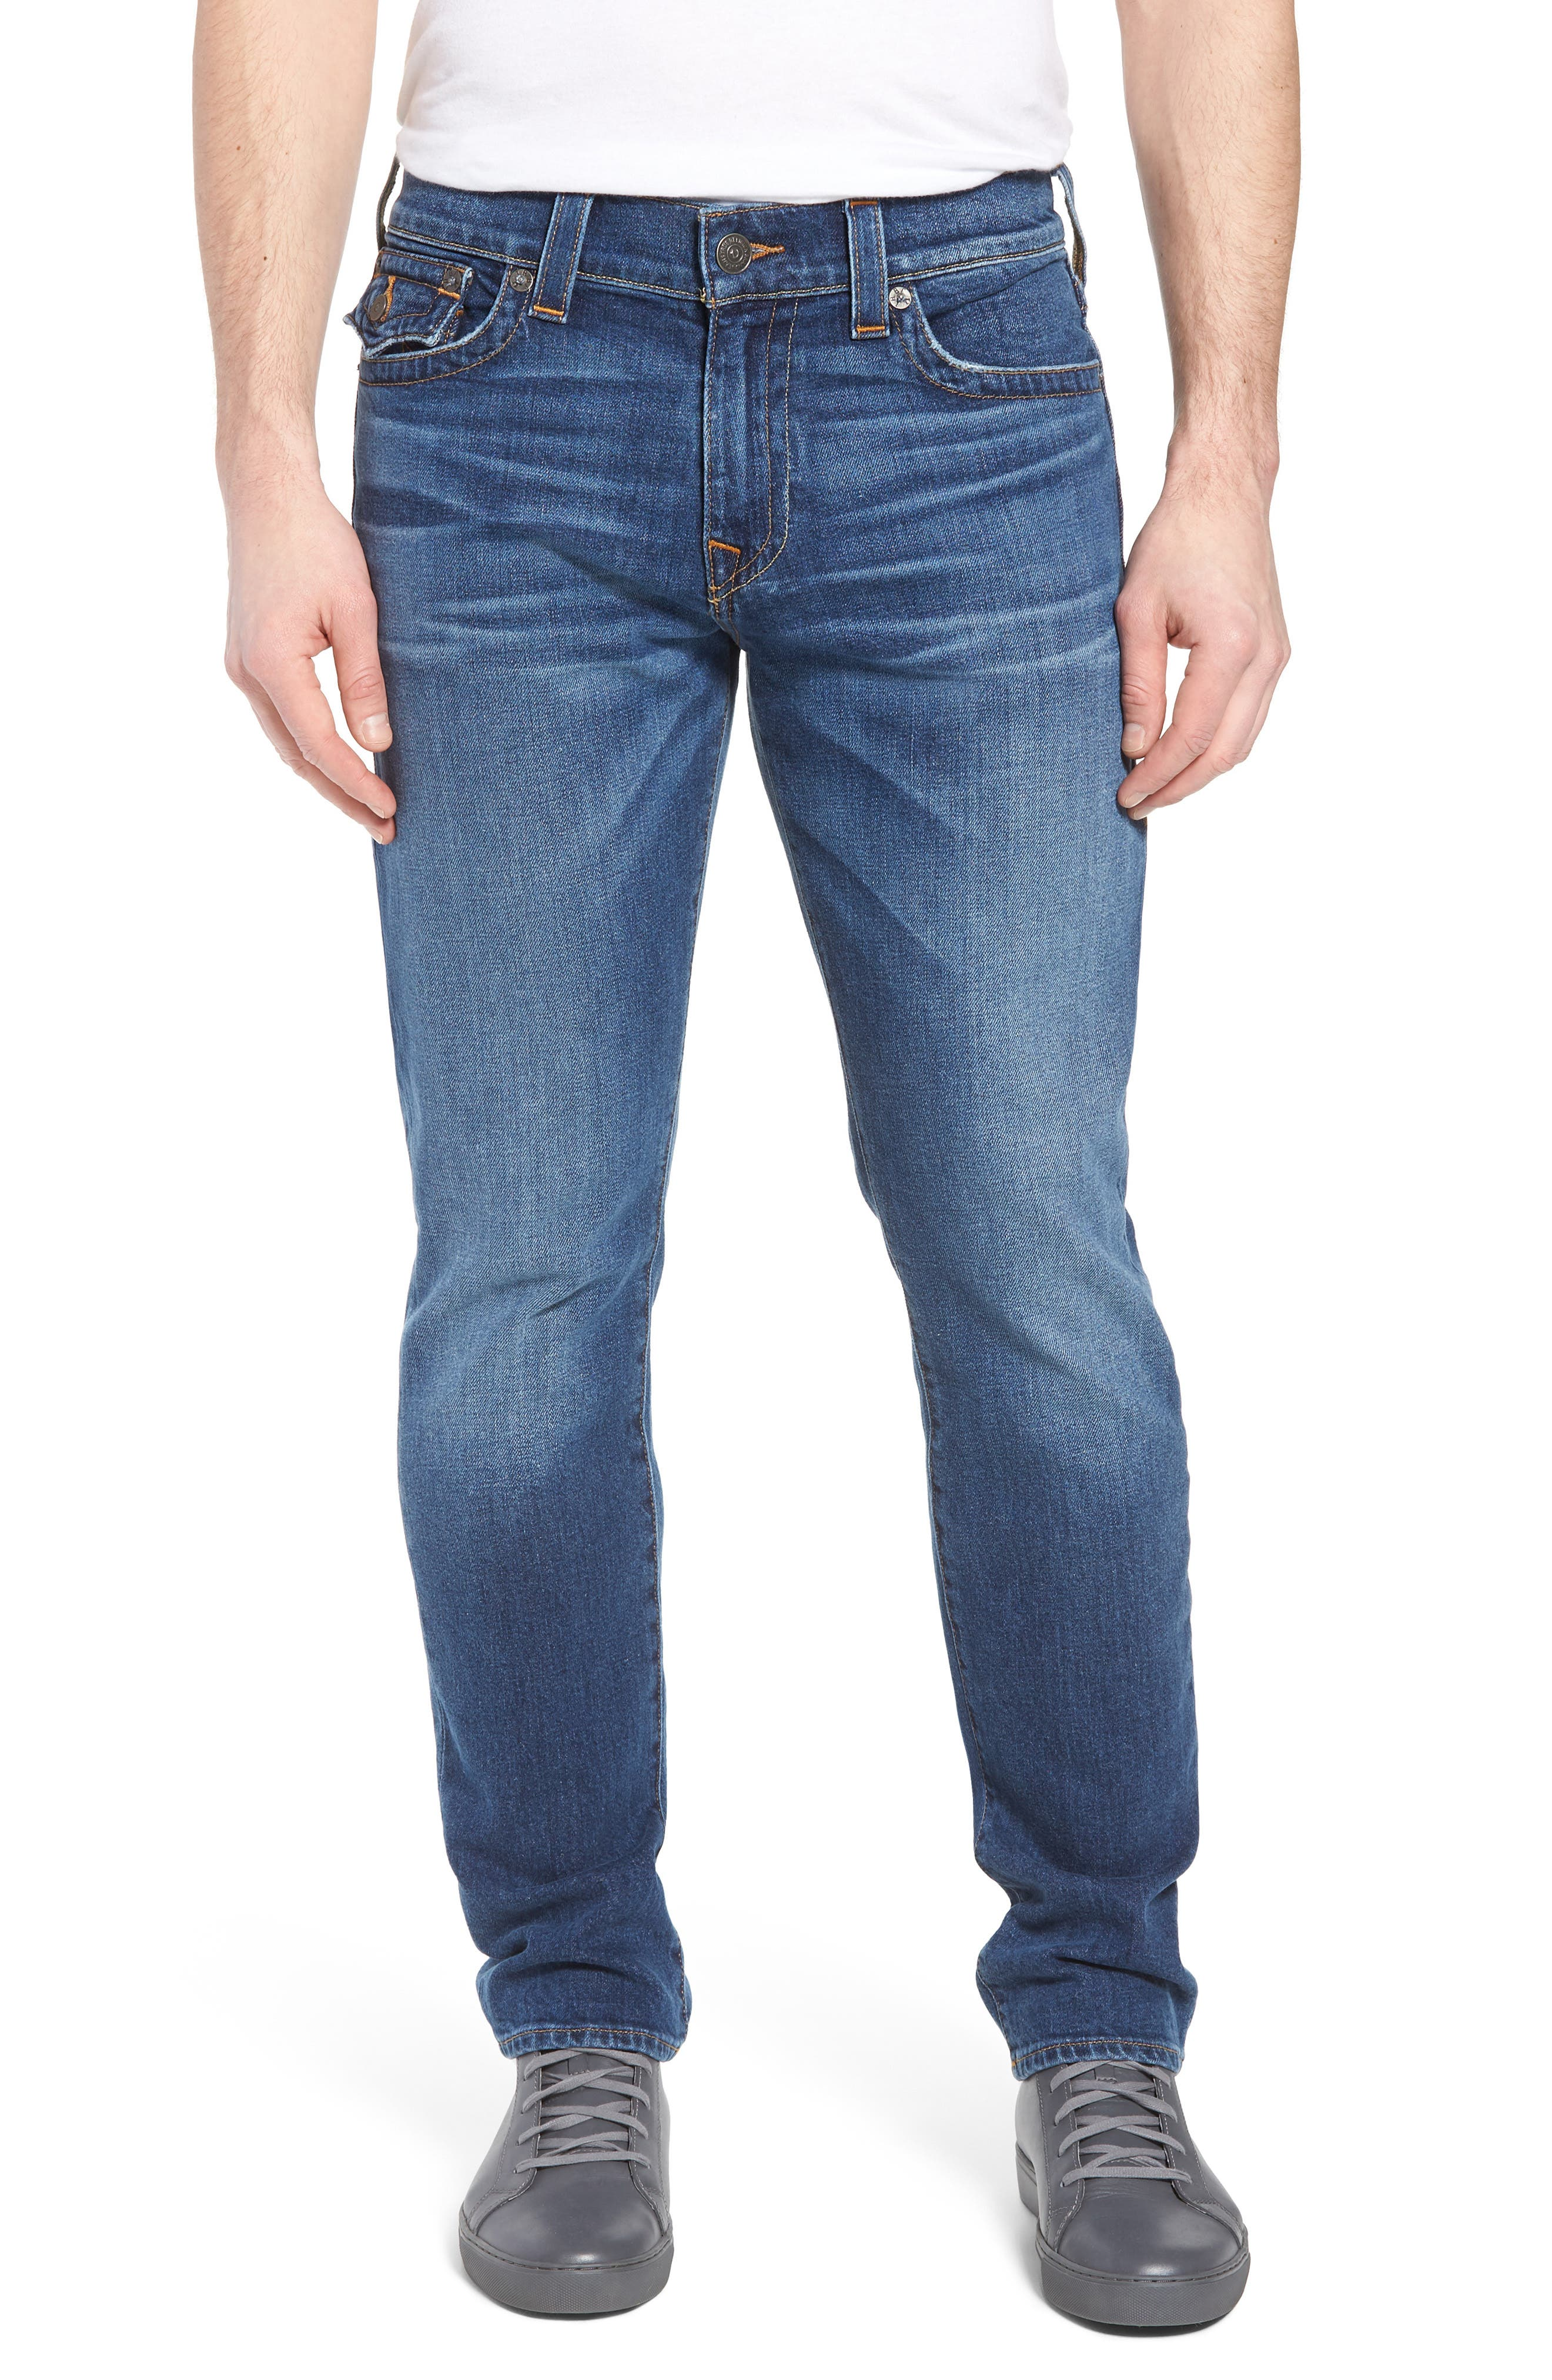 Ricky Relaxed Fit Jeans,                             Main thumbnail 1, color,                             INDIGO TRAVELER